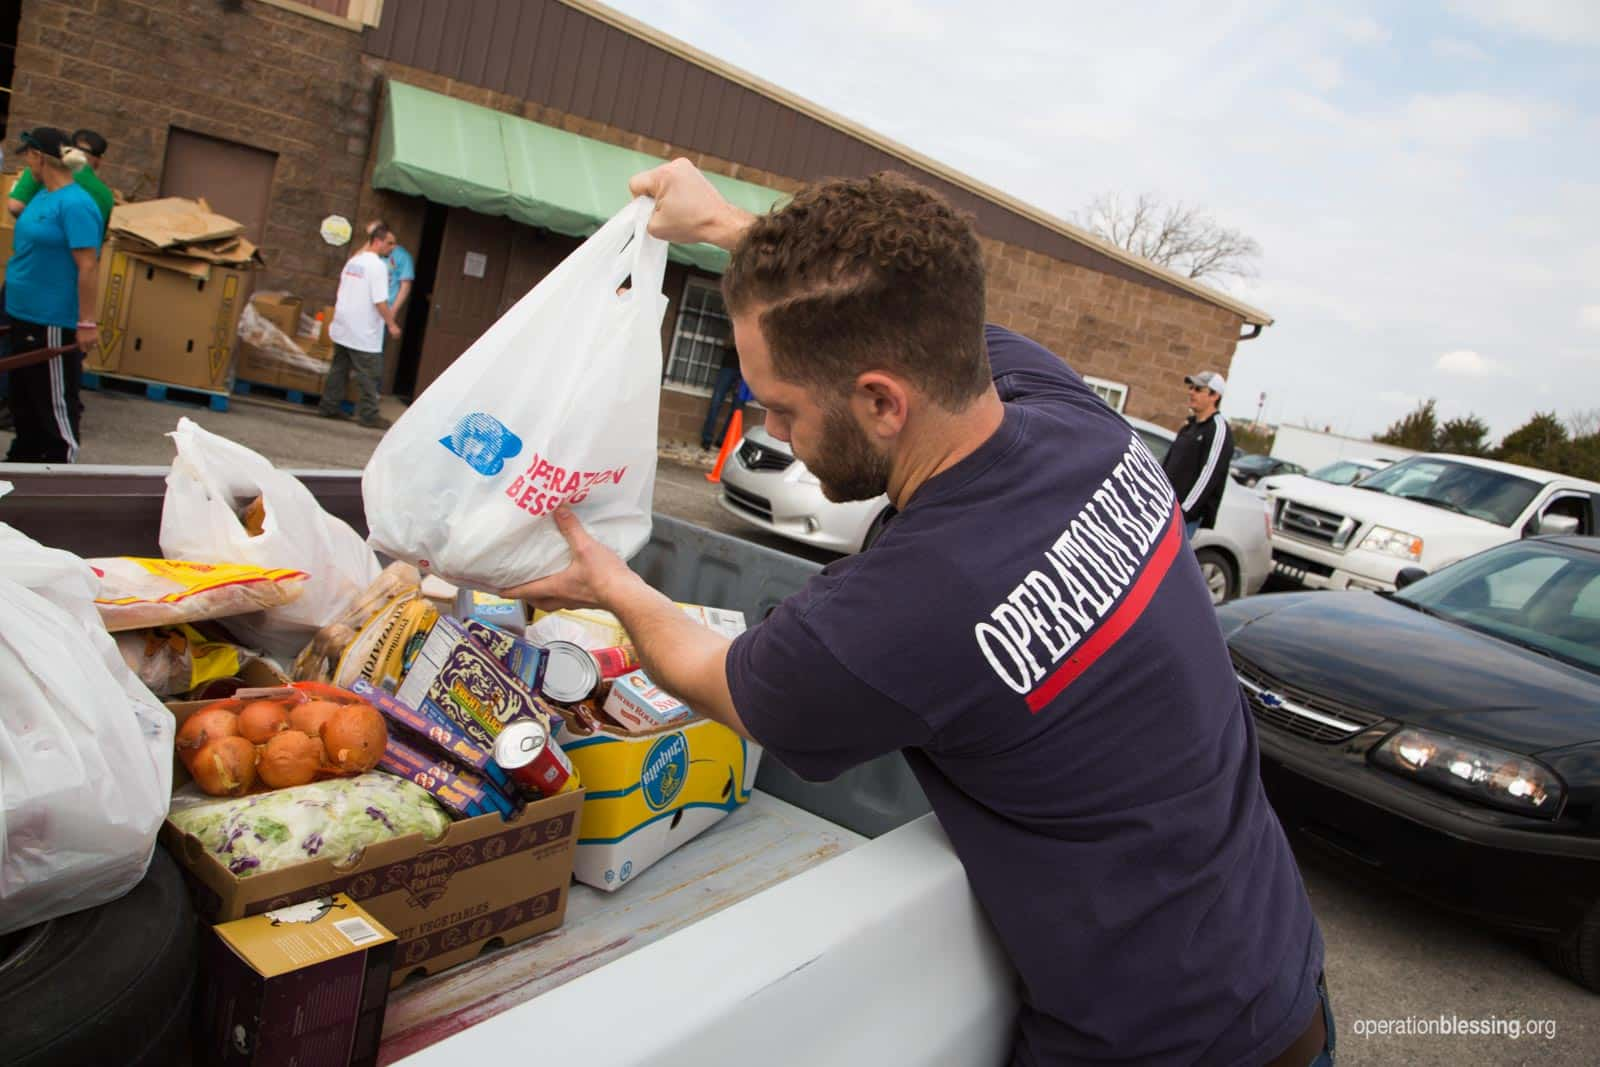 An Operation Blessing staff member helps load groceries into a truck at Joseph's Storehouse, an OBI-supported food pantry reaching vulnerable families in Tennessee.